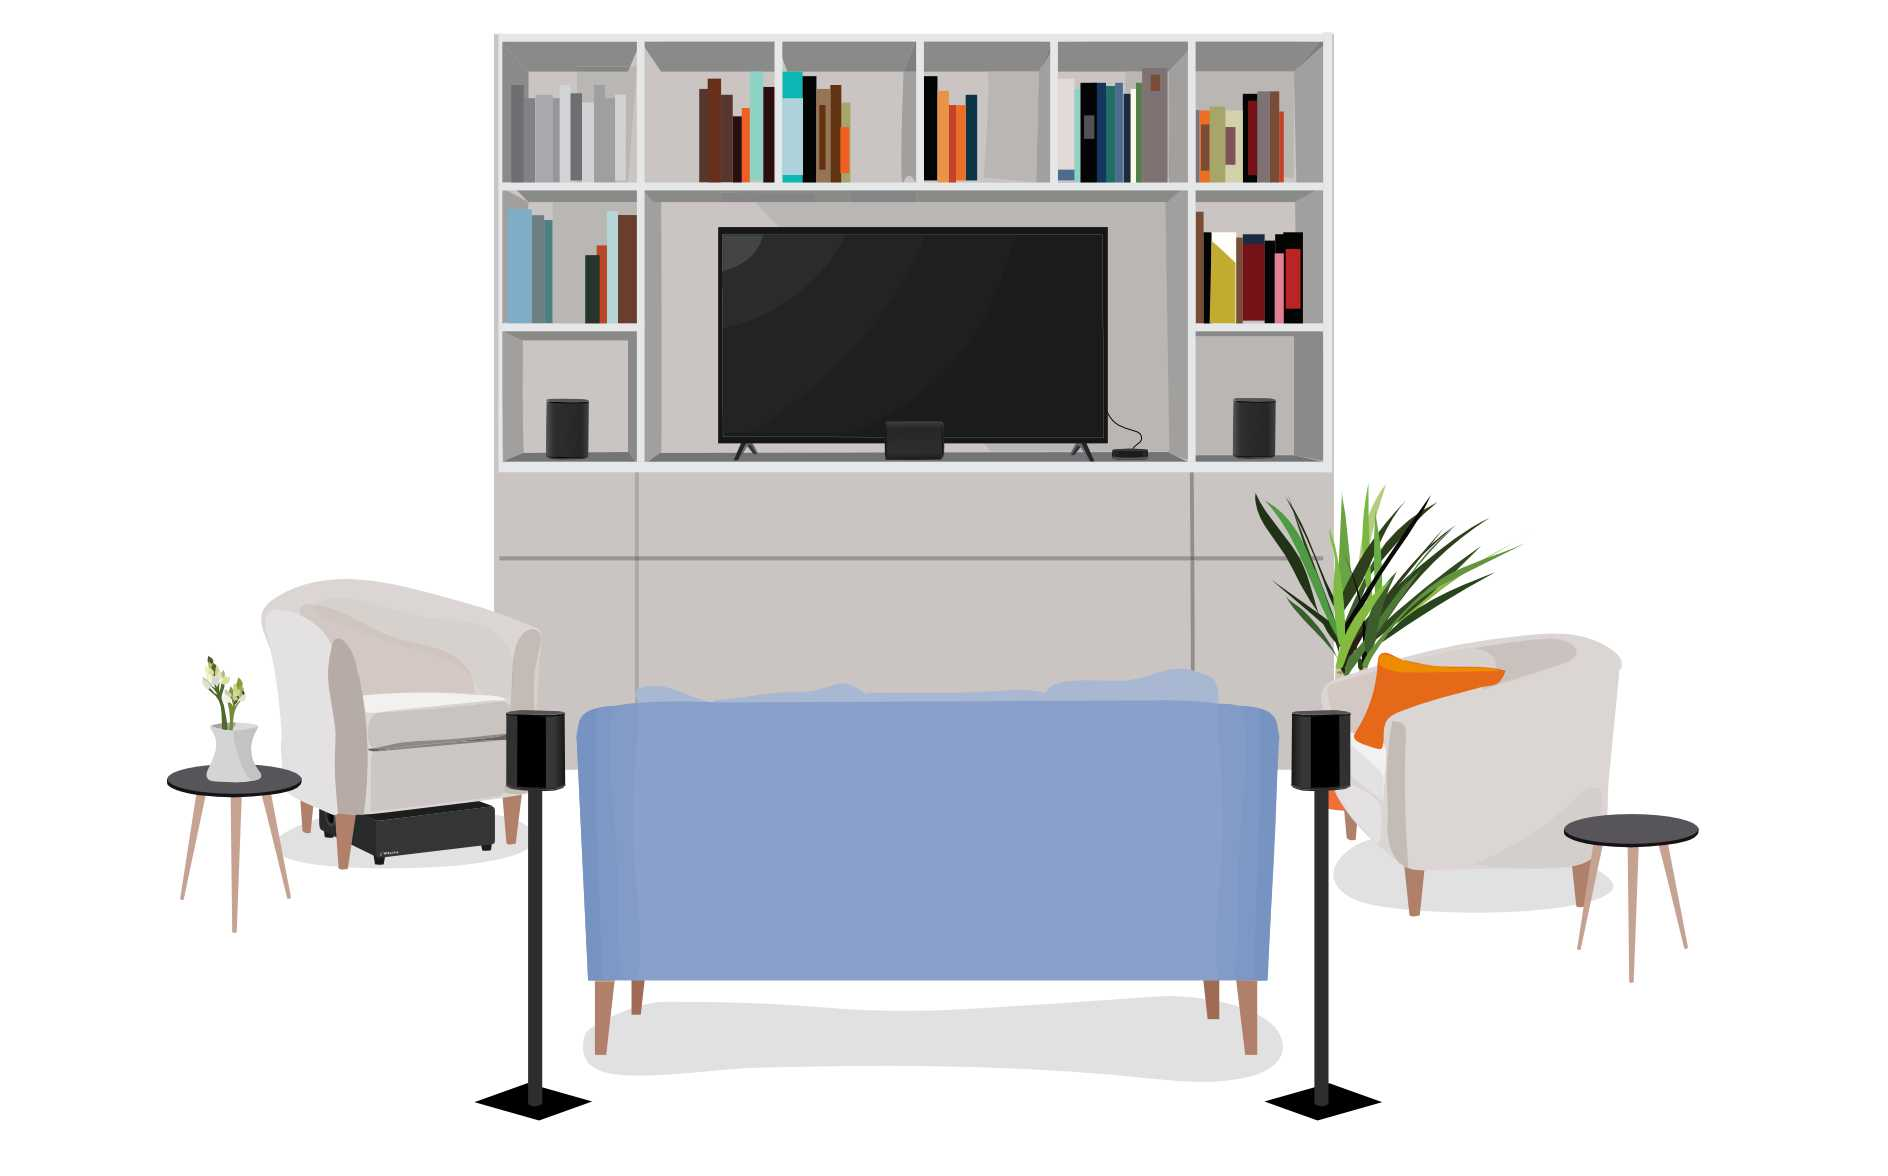 Cartoonish living room with tv, entertainment center, and speakers